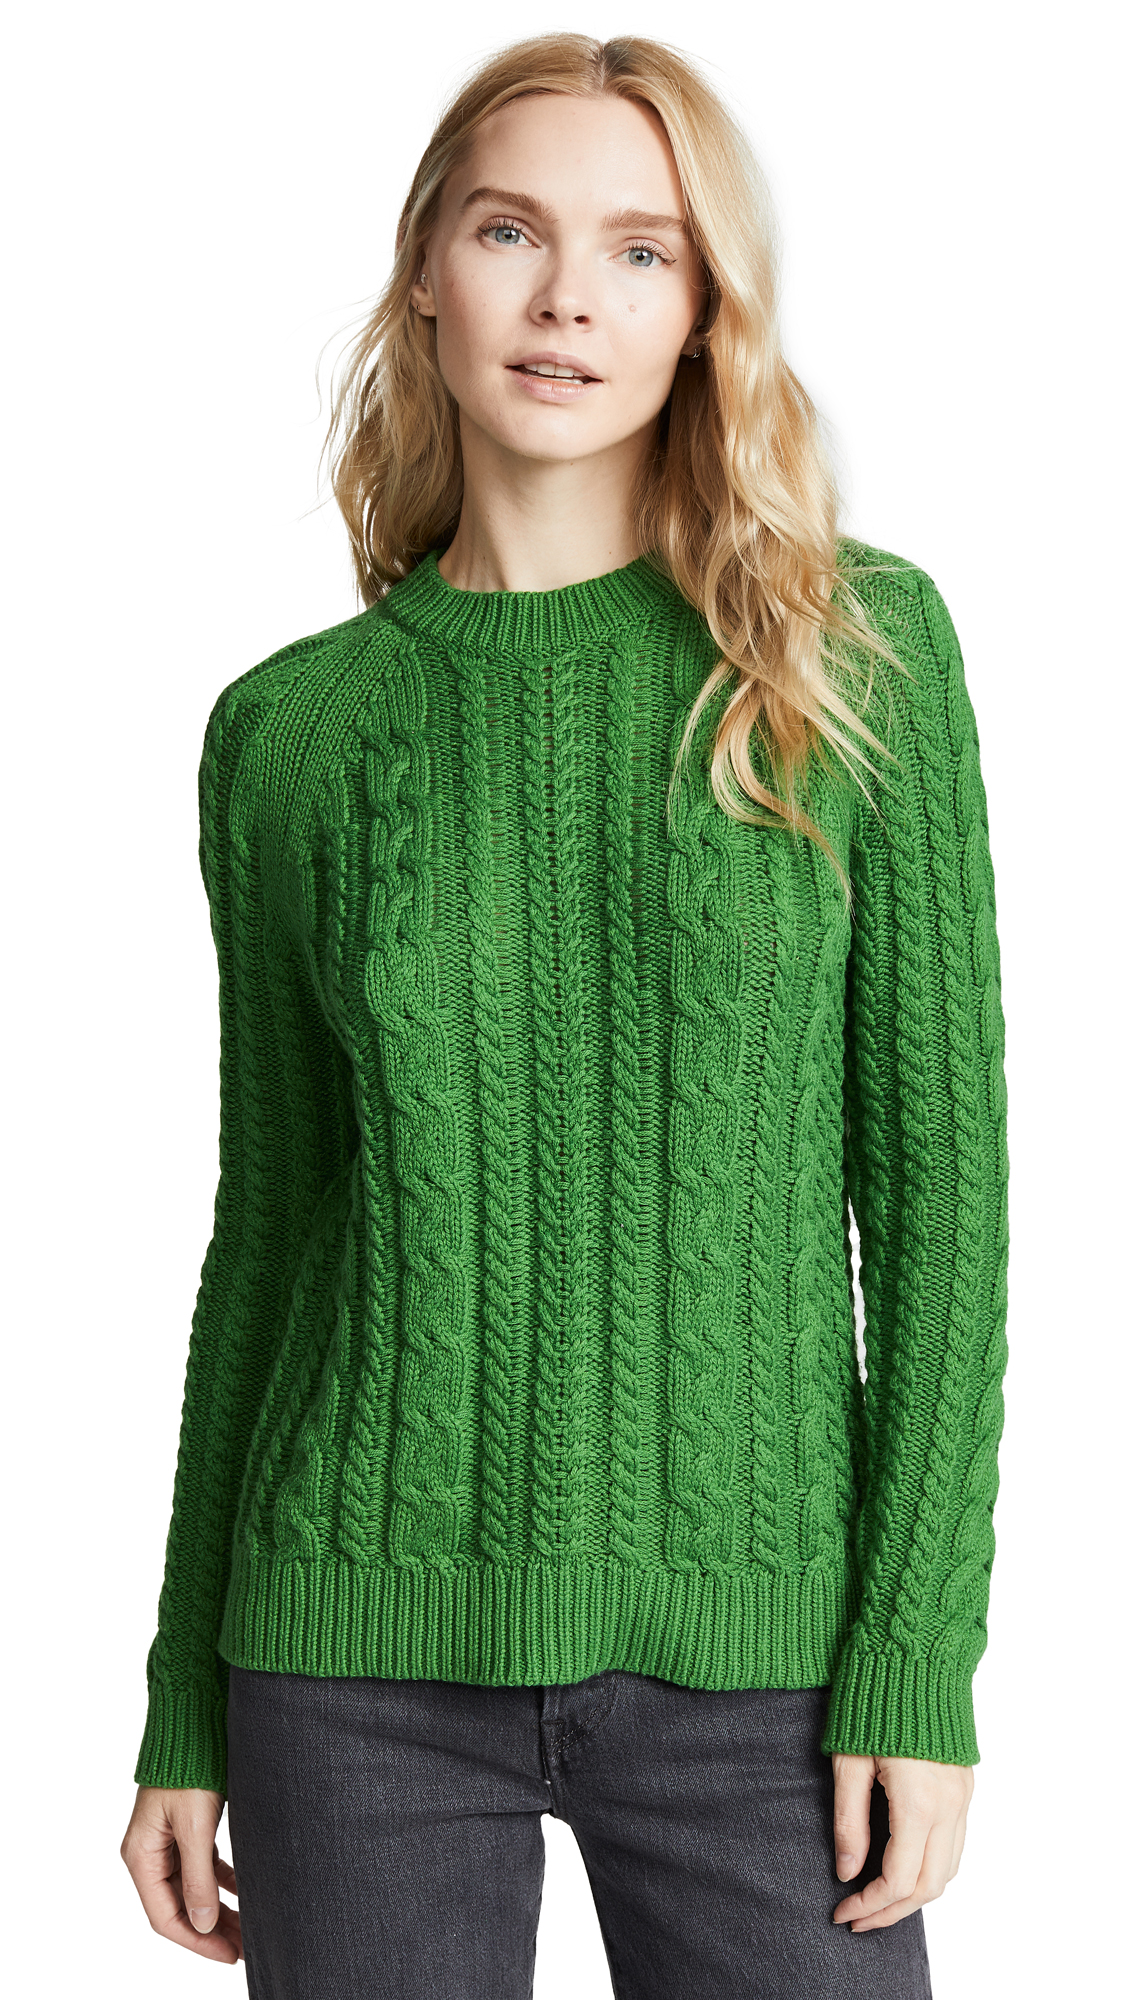 BOP BASICS Boxy Cable Knit Sweater in Kelly Green